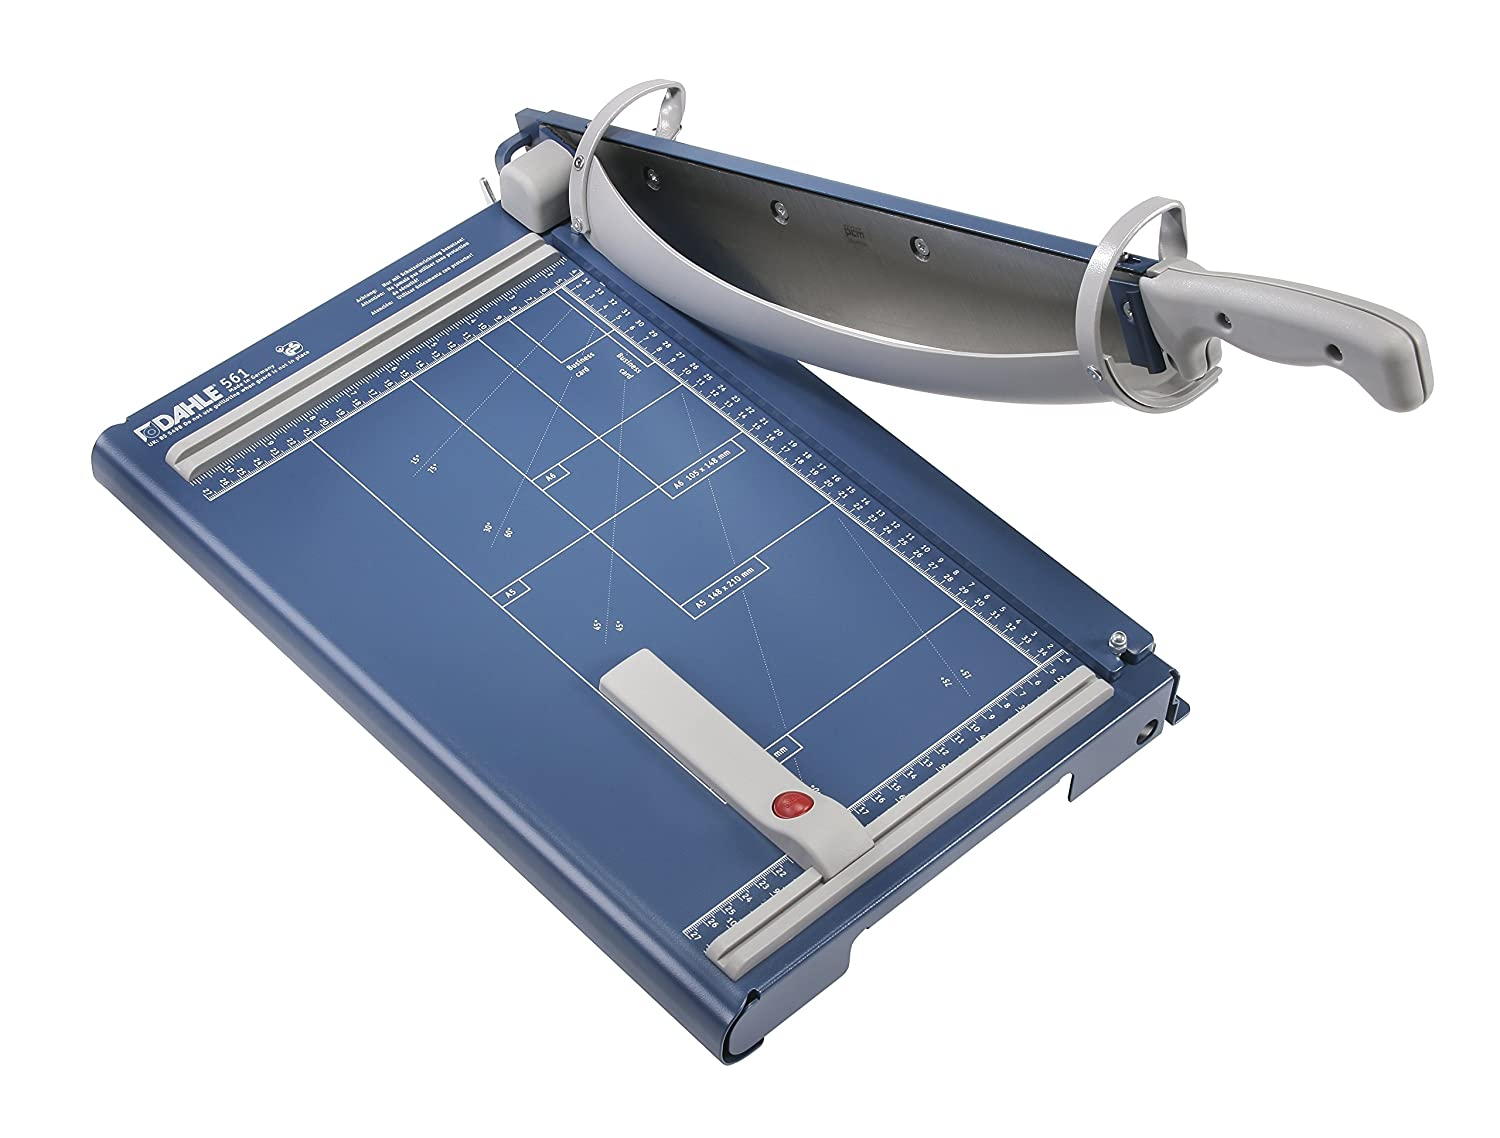 """Dahle 561 Premium Guillotine Trimmer, 14-1/8"""" Cut Length, 35 Sheet Capacity, Self-Sharpening Blade, Automatic Clamp, w/Safety Guard"""